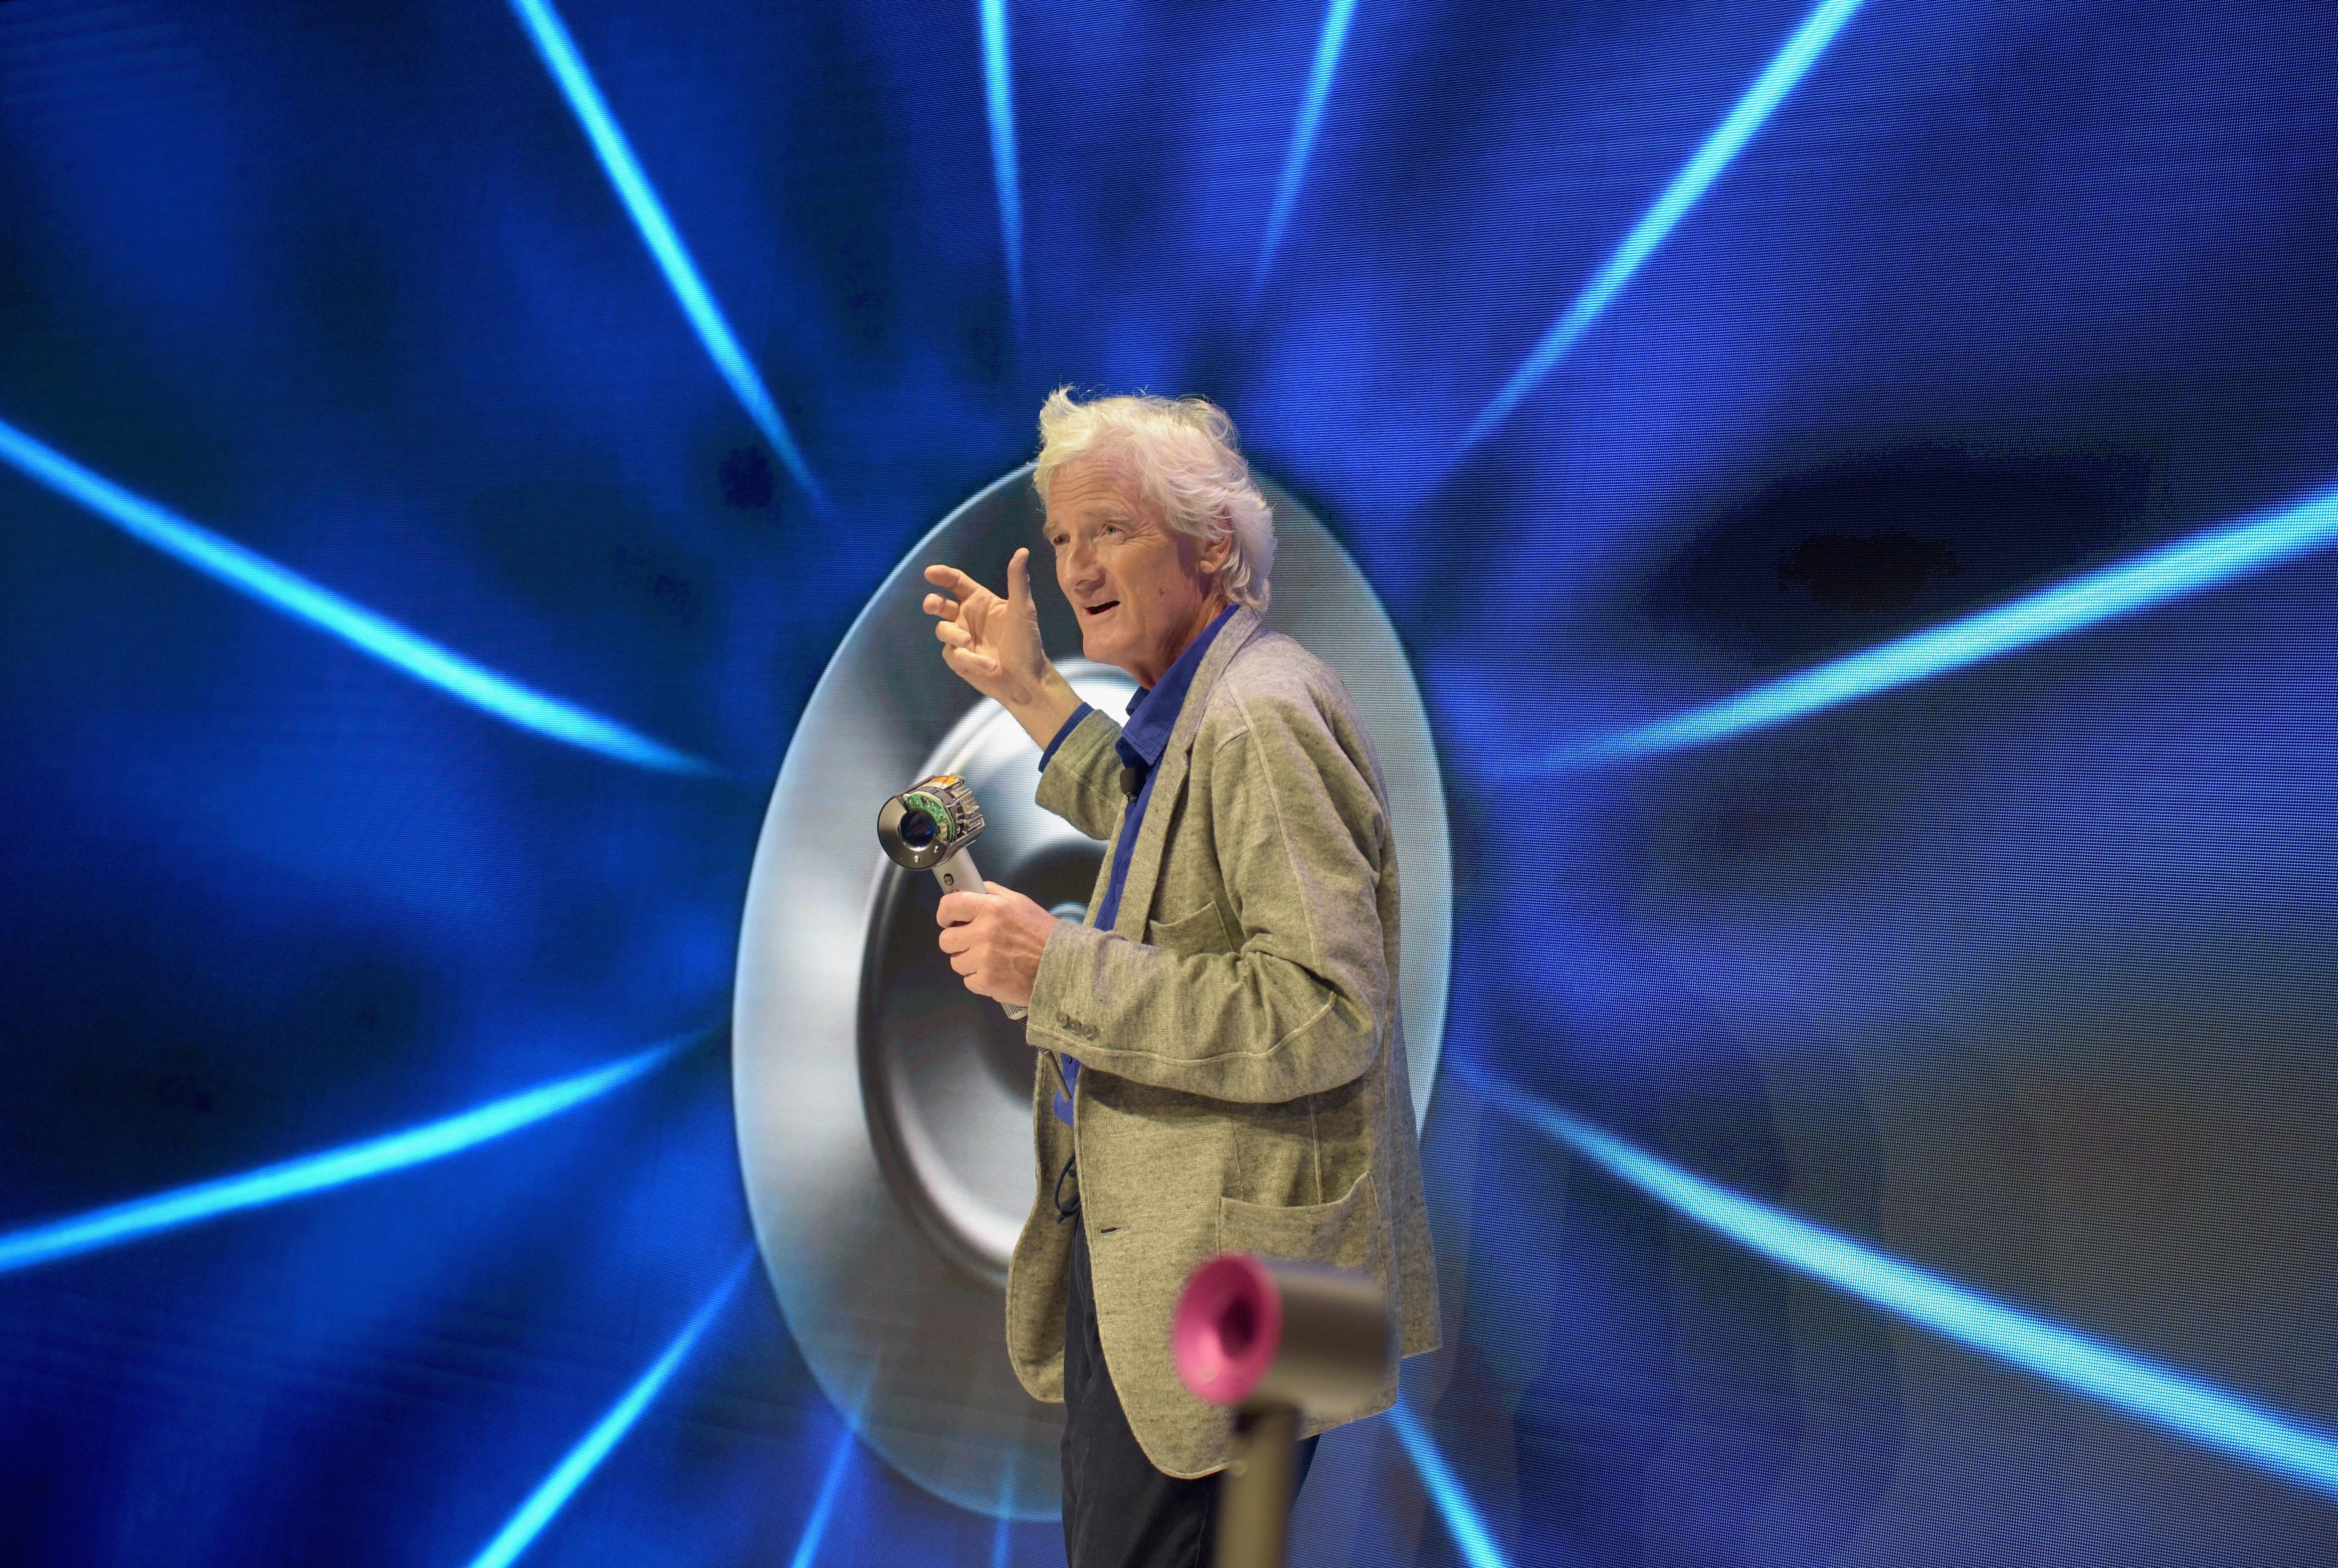 Dyson founder and chief engineer Sir James Dyson speaks onstage during the Dyson Supersonic Hair Dryer launch event on Sept. 14, 2016, in New York City.